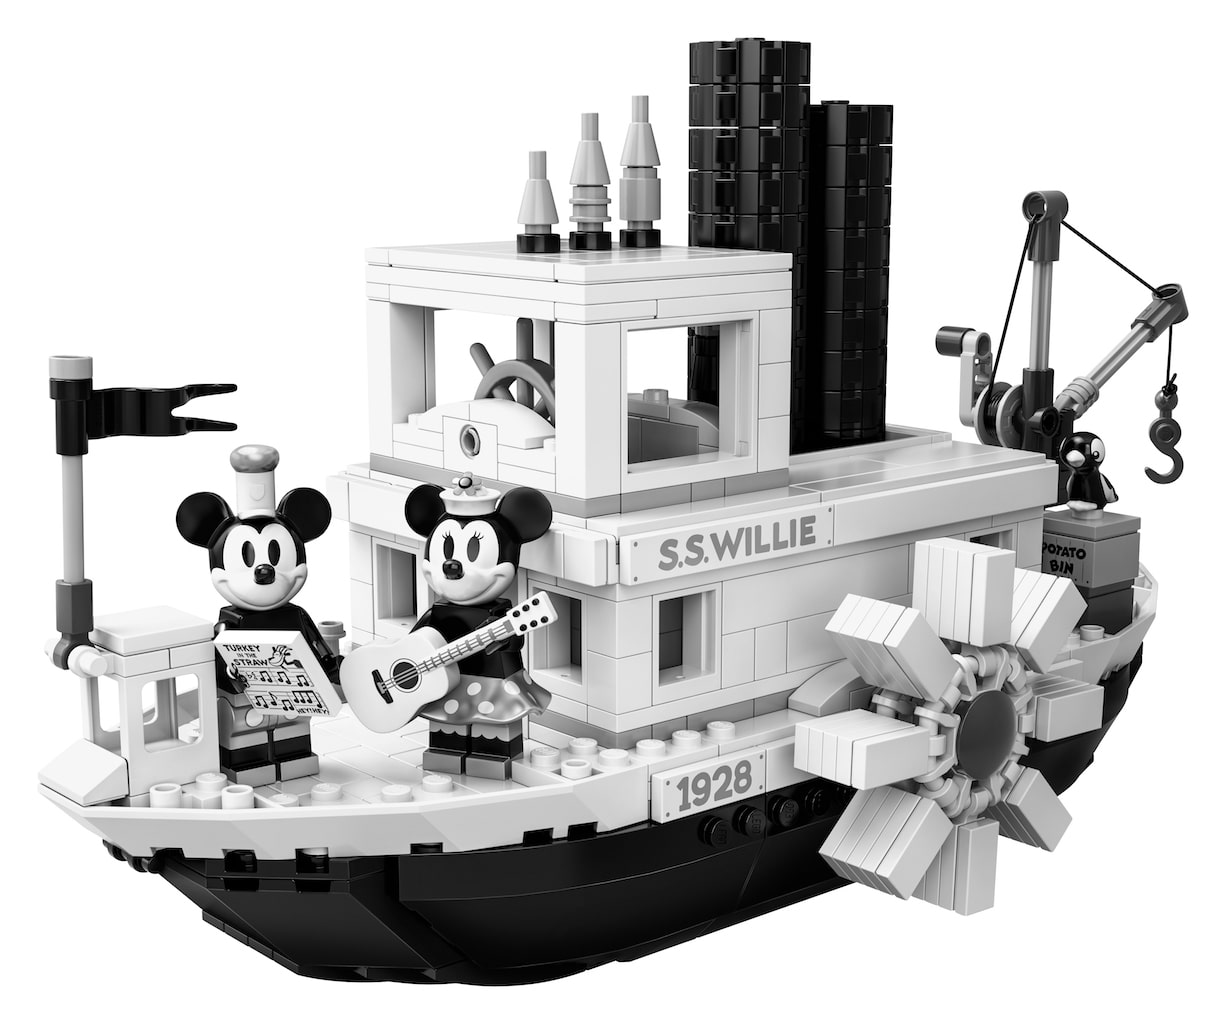 Disney and LEGO celebrate Mickey Mouse's birthday with Steamboat Willie set